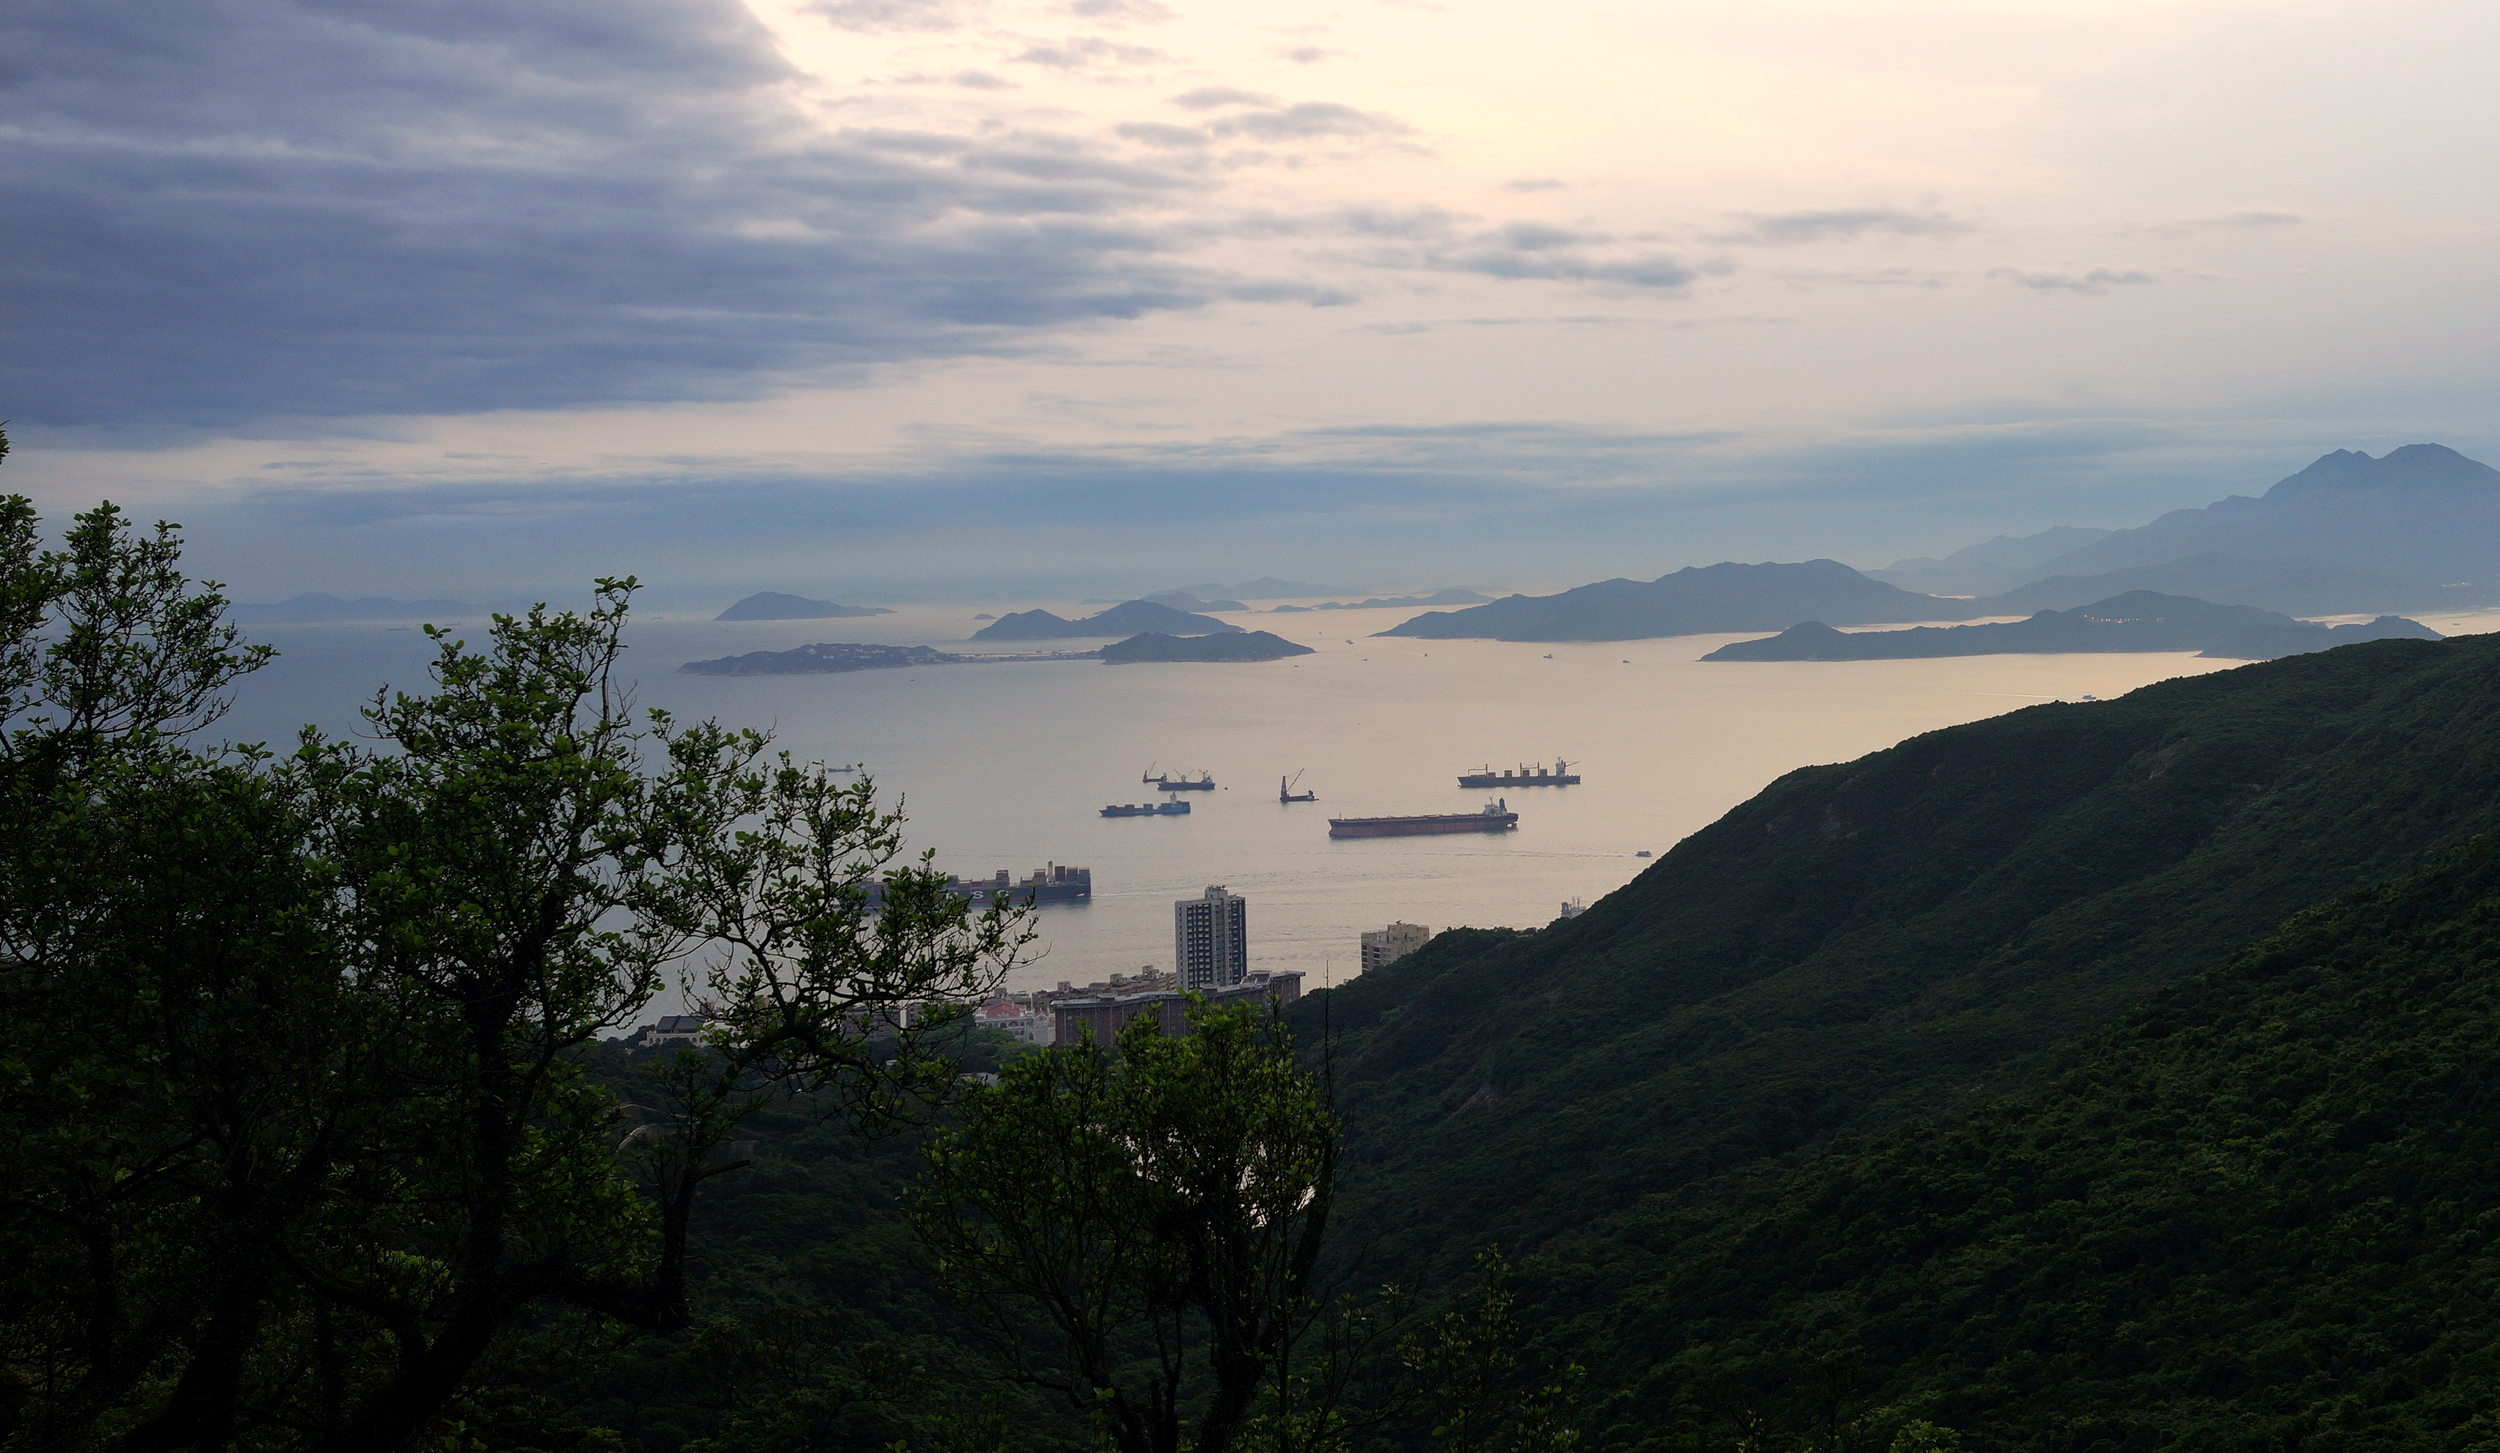 April 26th 2014 was cloudy but very clear - it is quite rare to see Cheung Chau Island (2 humps joined by a thin strip) and the other islands from the Peak.